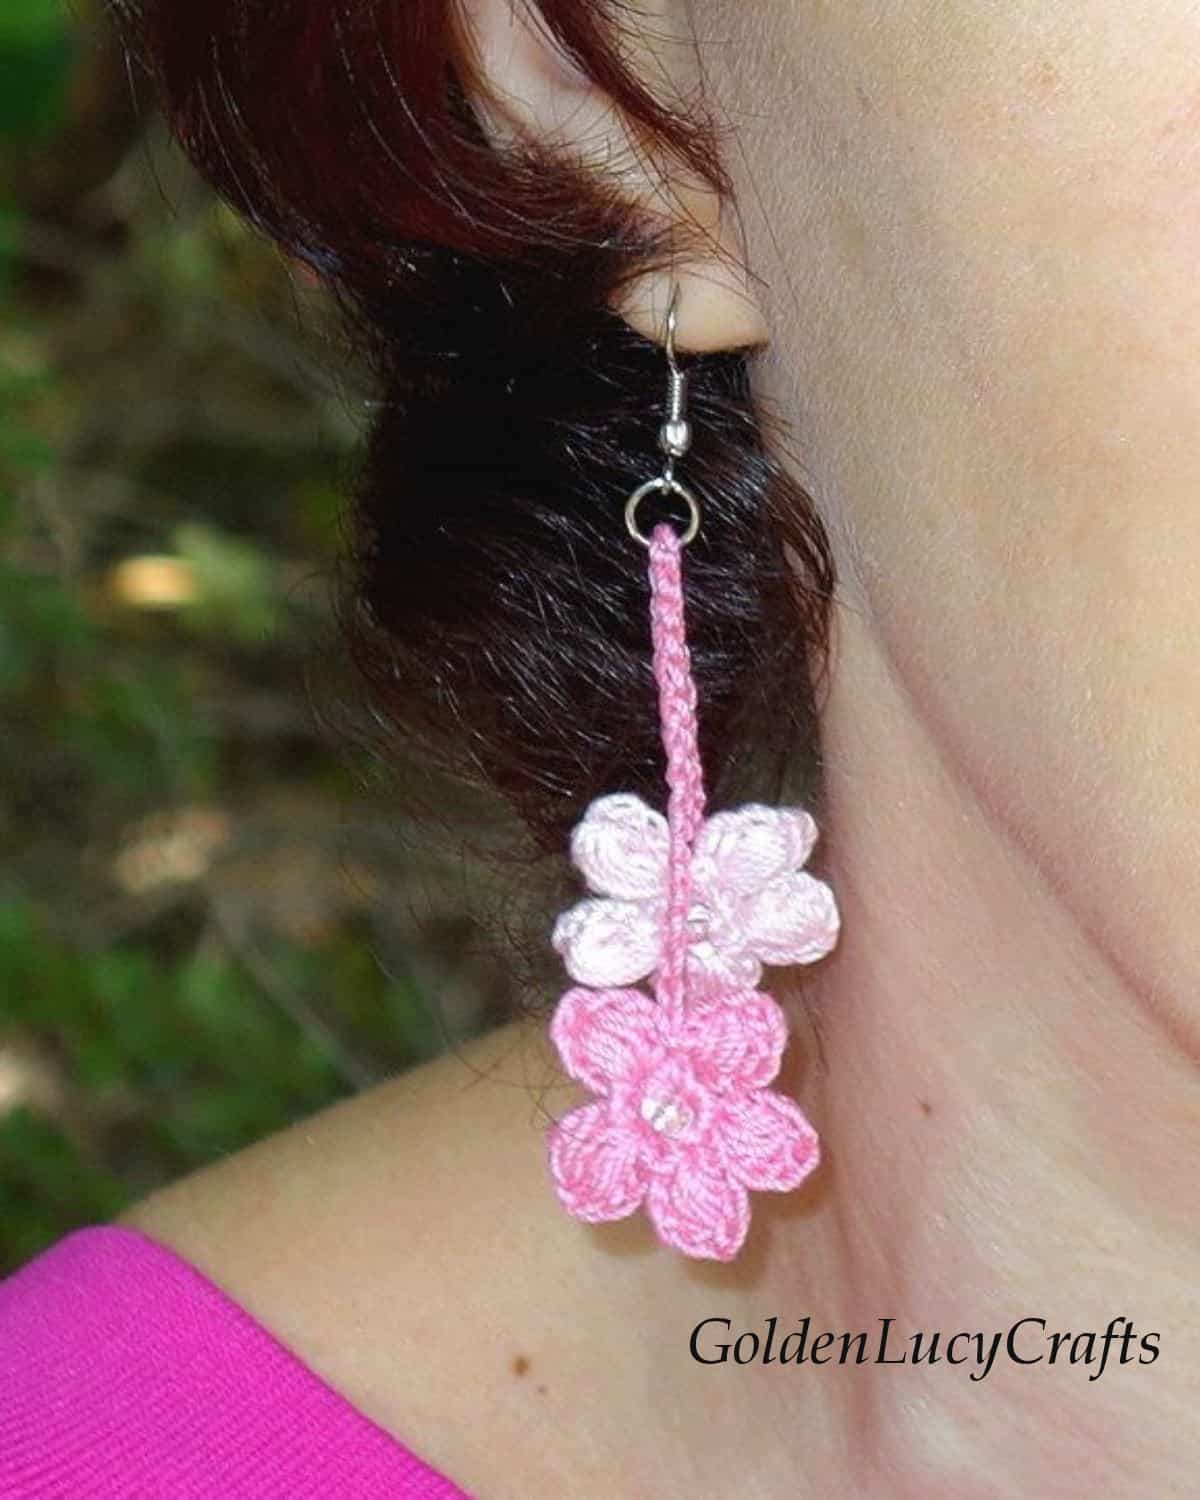 Model is wearing crocheted earring, close up image.